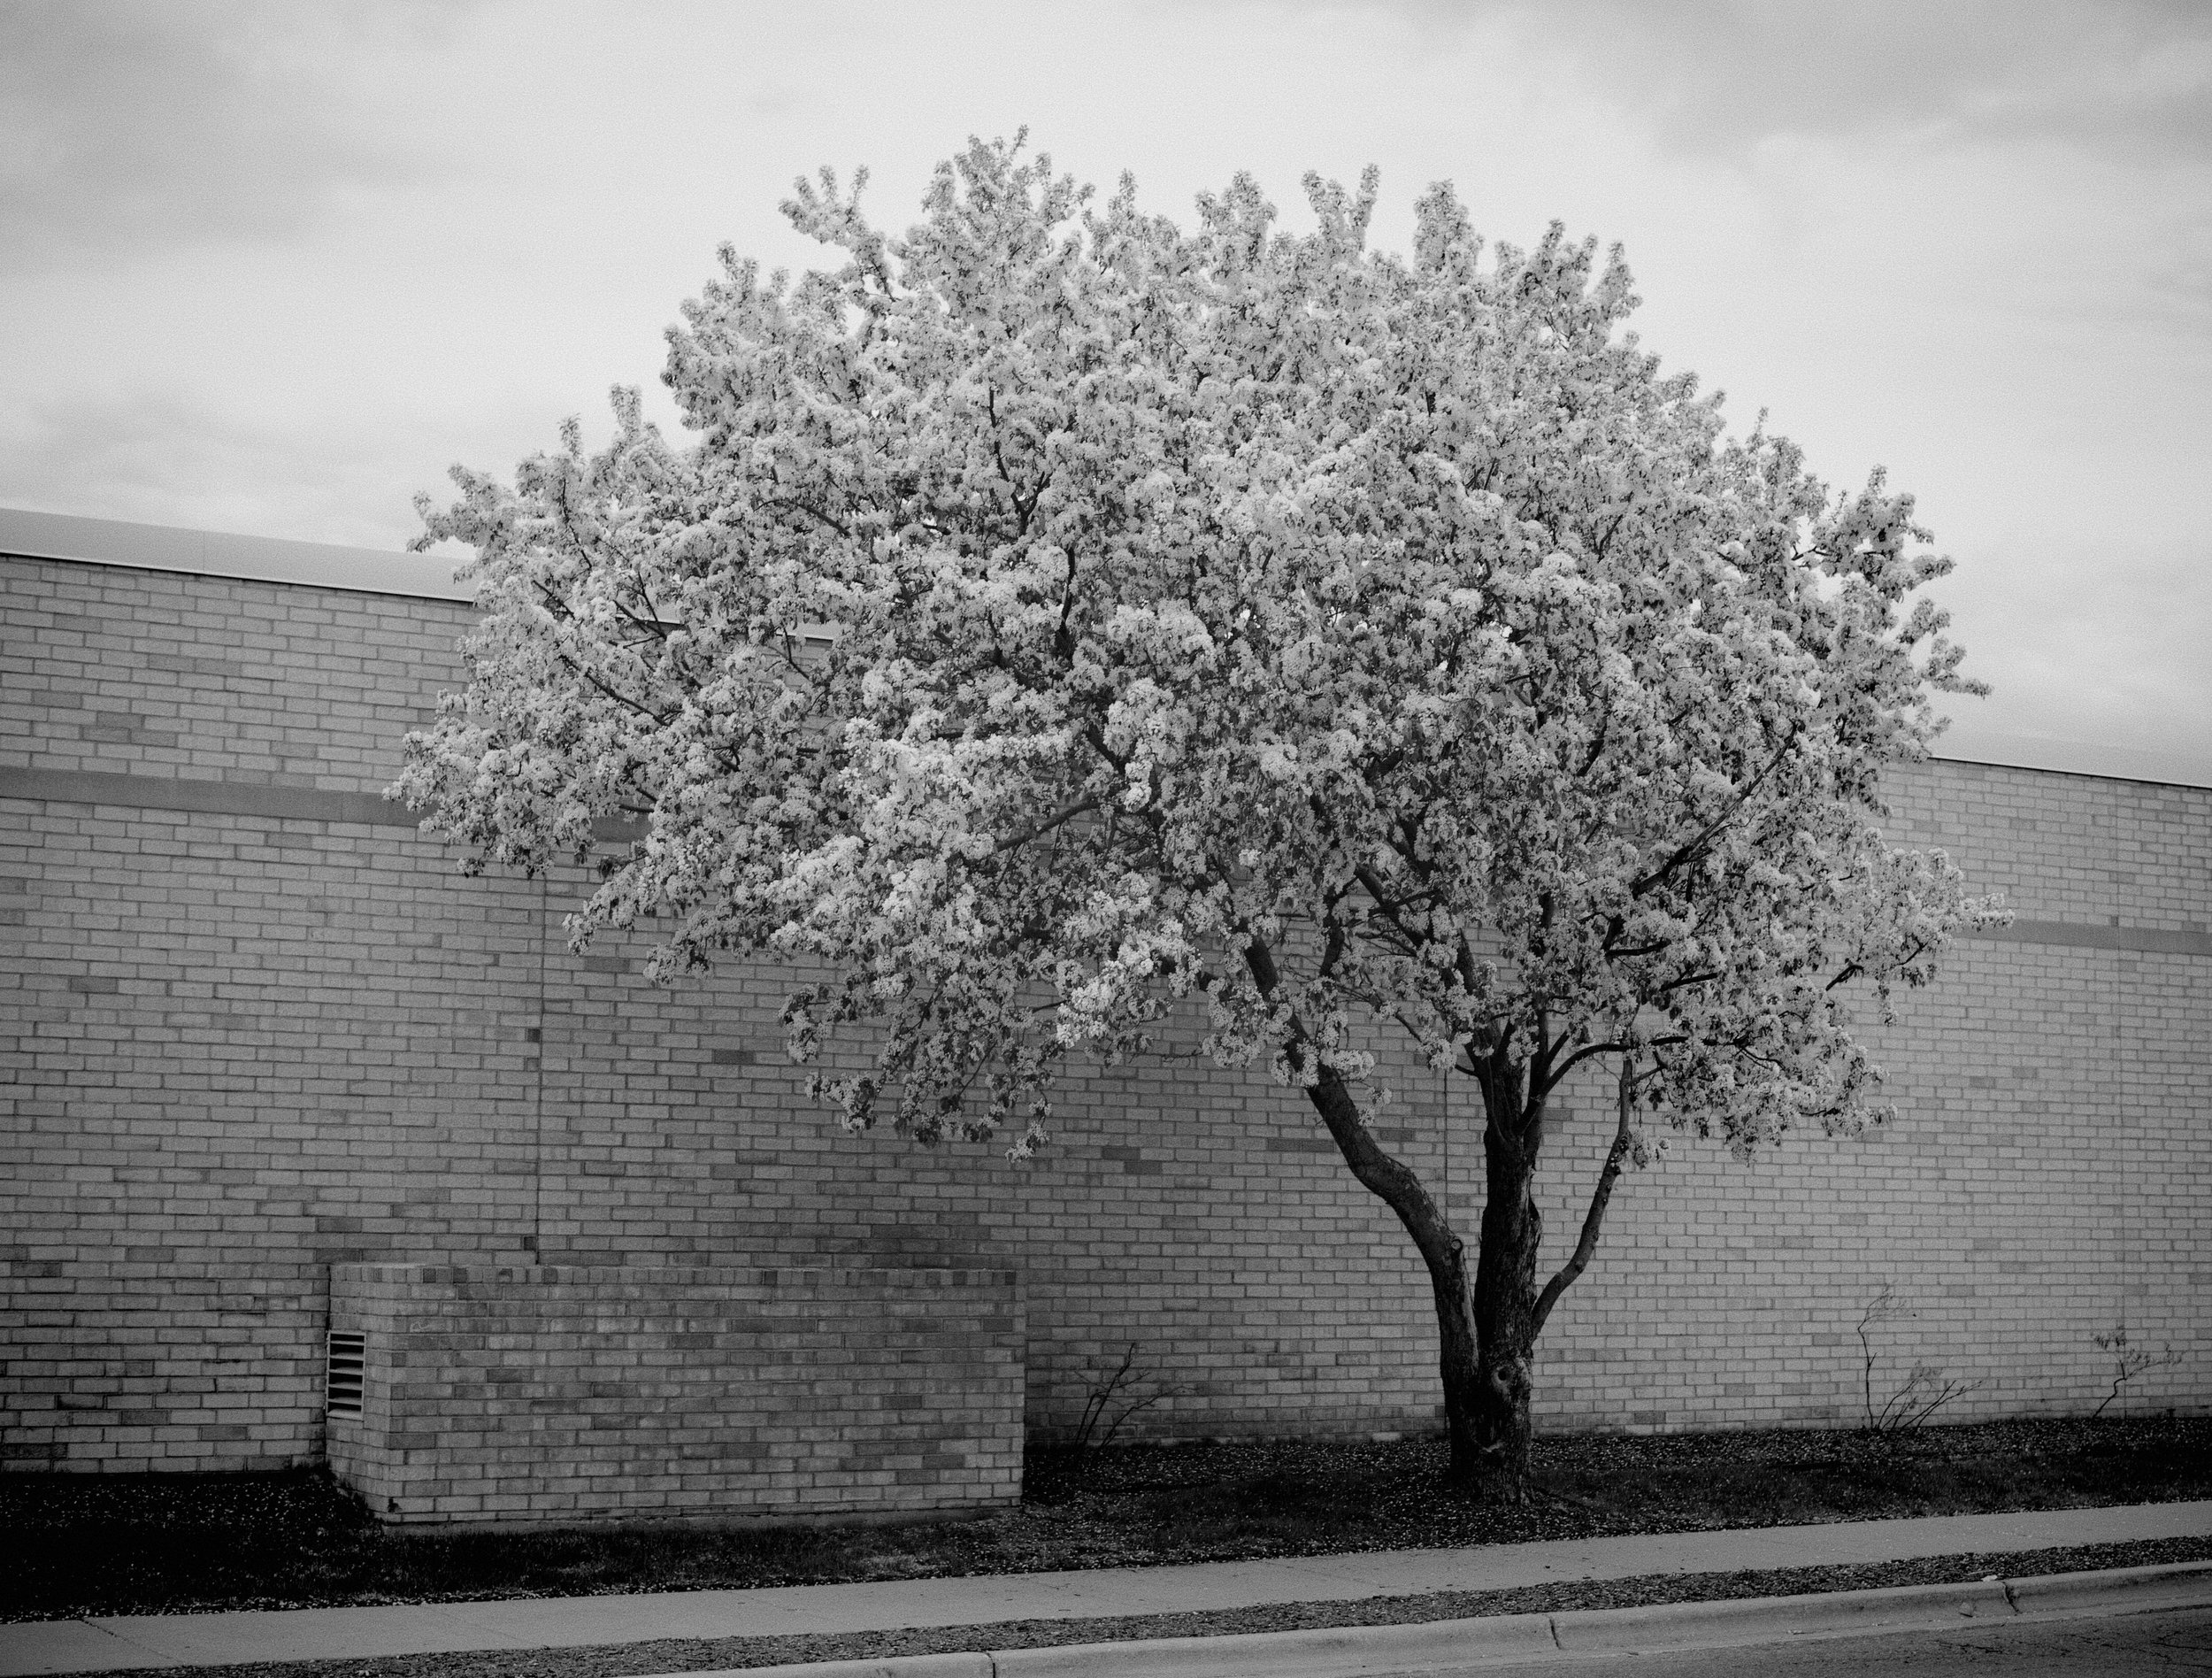 Crabapple. Hilldale Mall. Madison, Wisconsin. May 2019. © William D. Walker